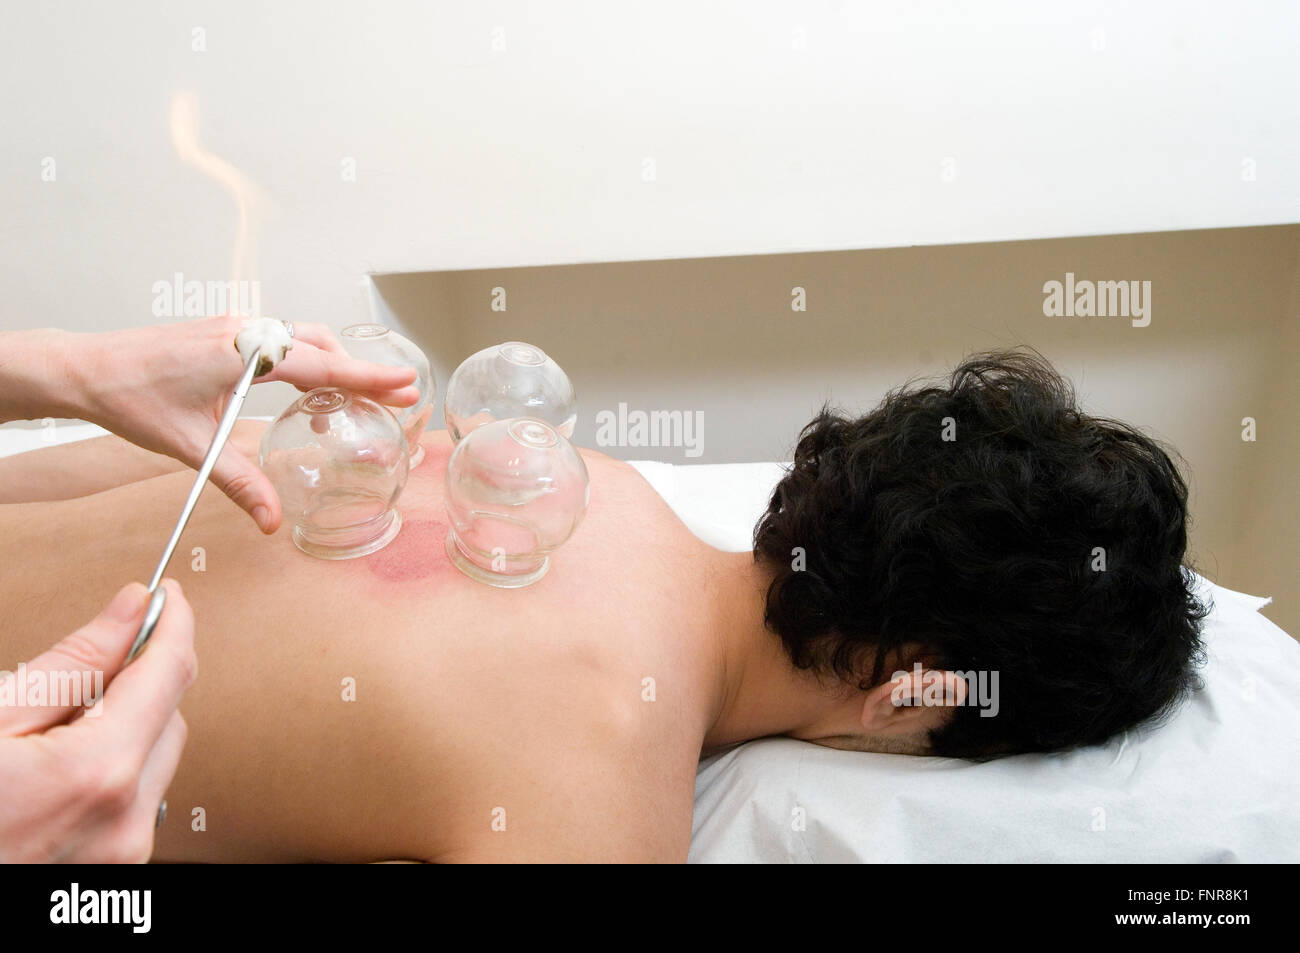 Male acupuncture patient undergoes cupping, a technique where a glass cup is suctioned onto the body. - Stock Image